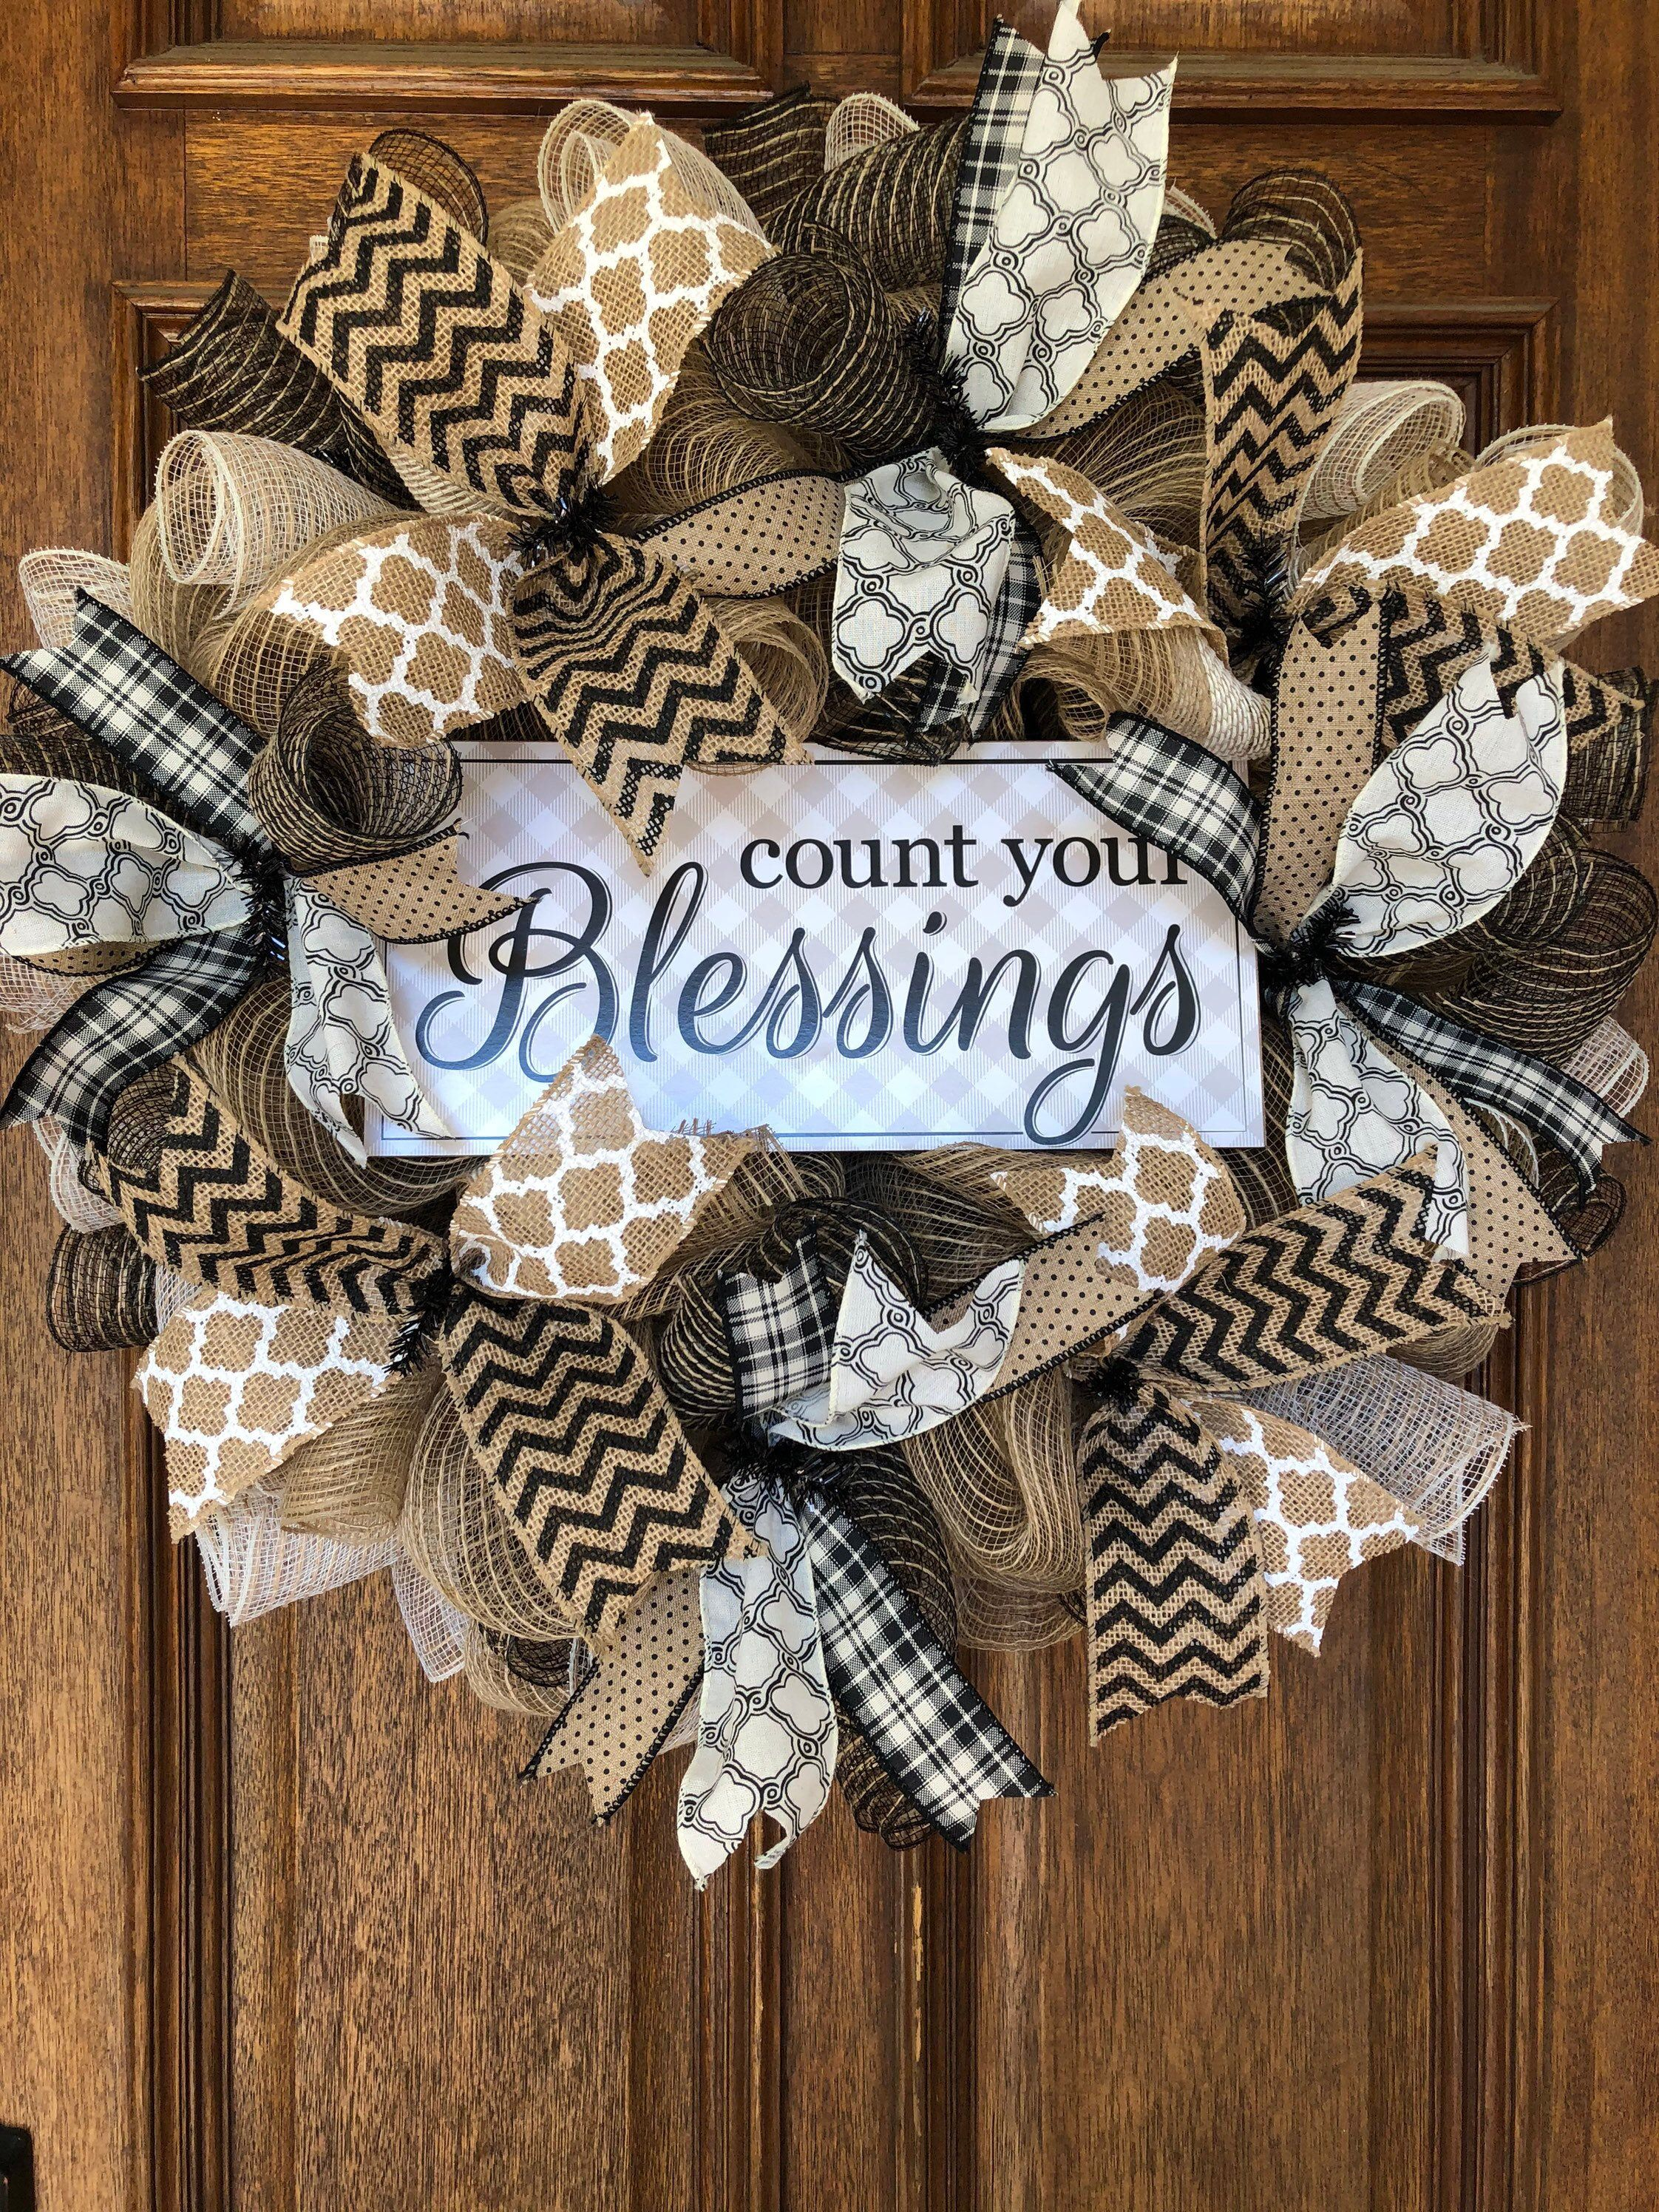 Count Your Blessings deco mesh wreath, everyday wreath, black and white wreath, neutral deco mesh wreath, burlap wreath, farmhouse wreath